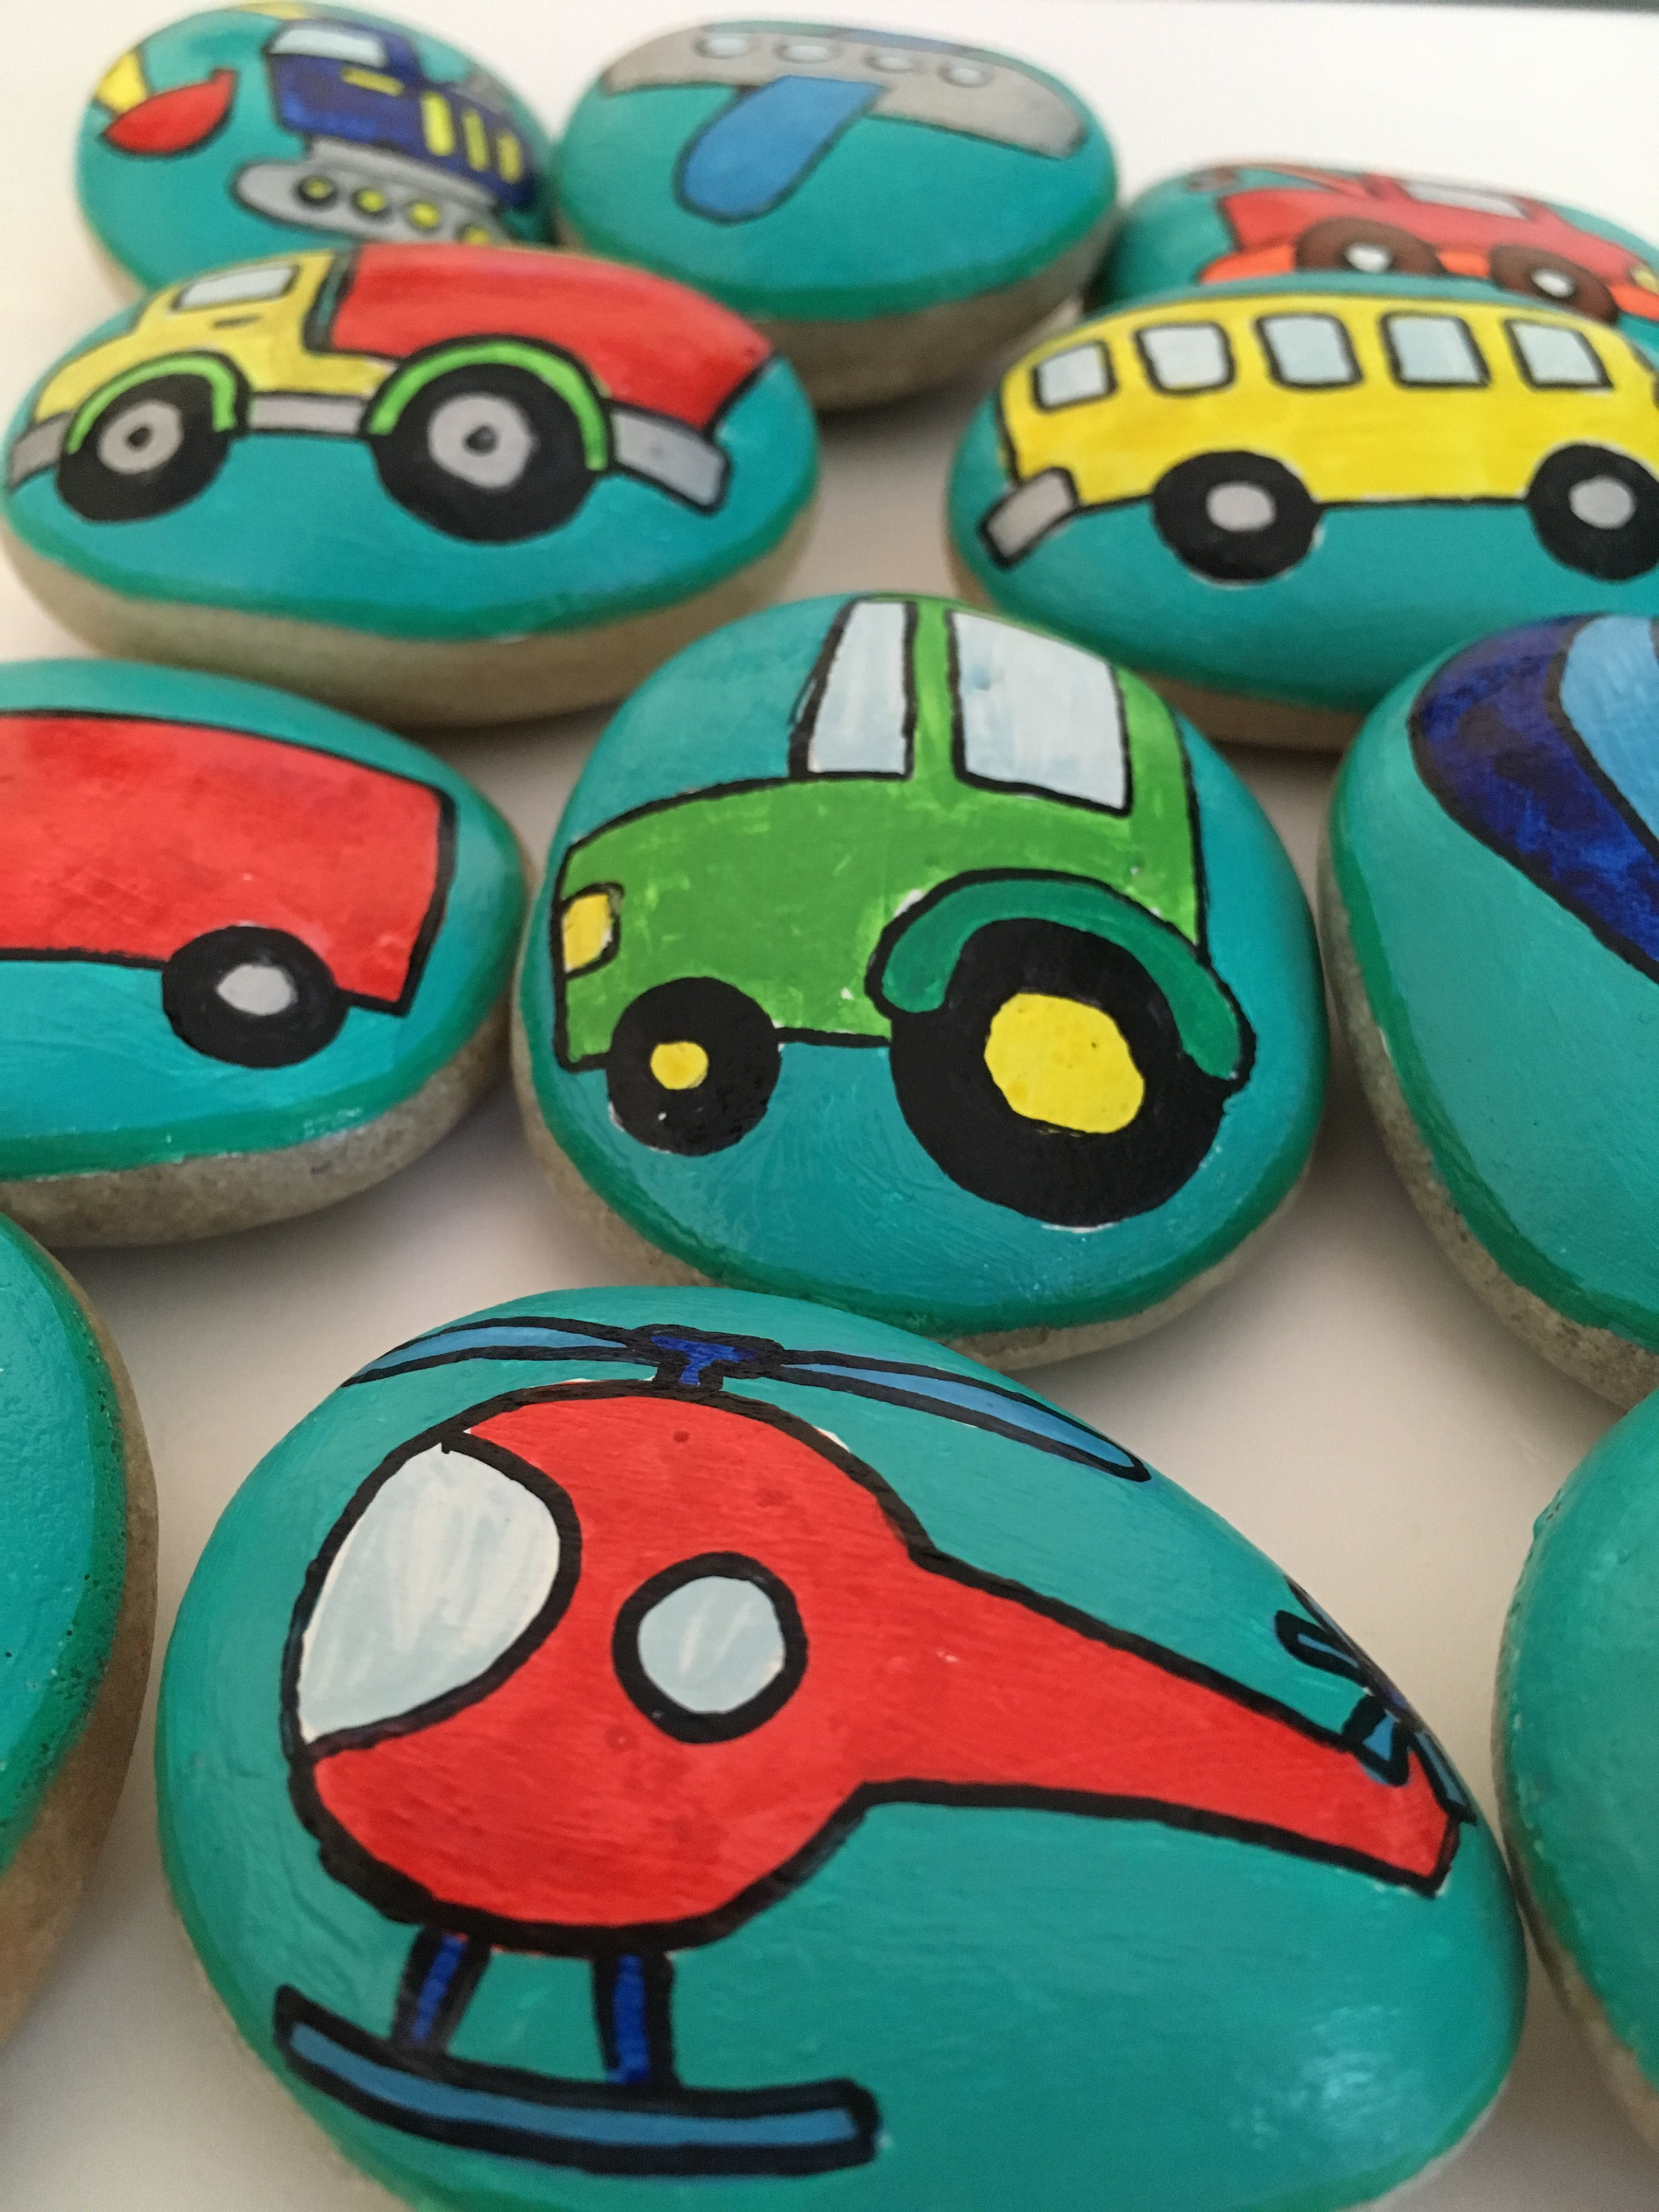 Airplane and Helicopter Stones Vehicles Story Stones Early Literacy Tool Transportation Party Favors Set of Cars and Trucks Story Rocks